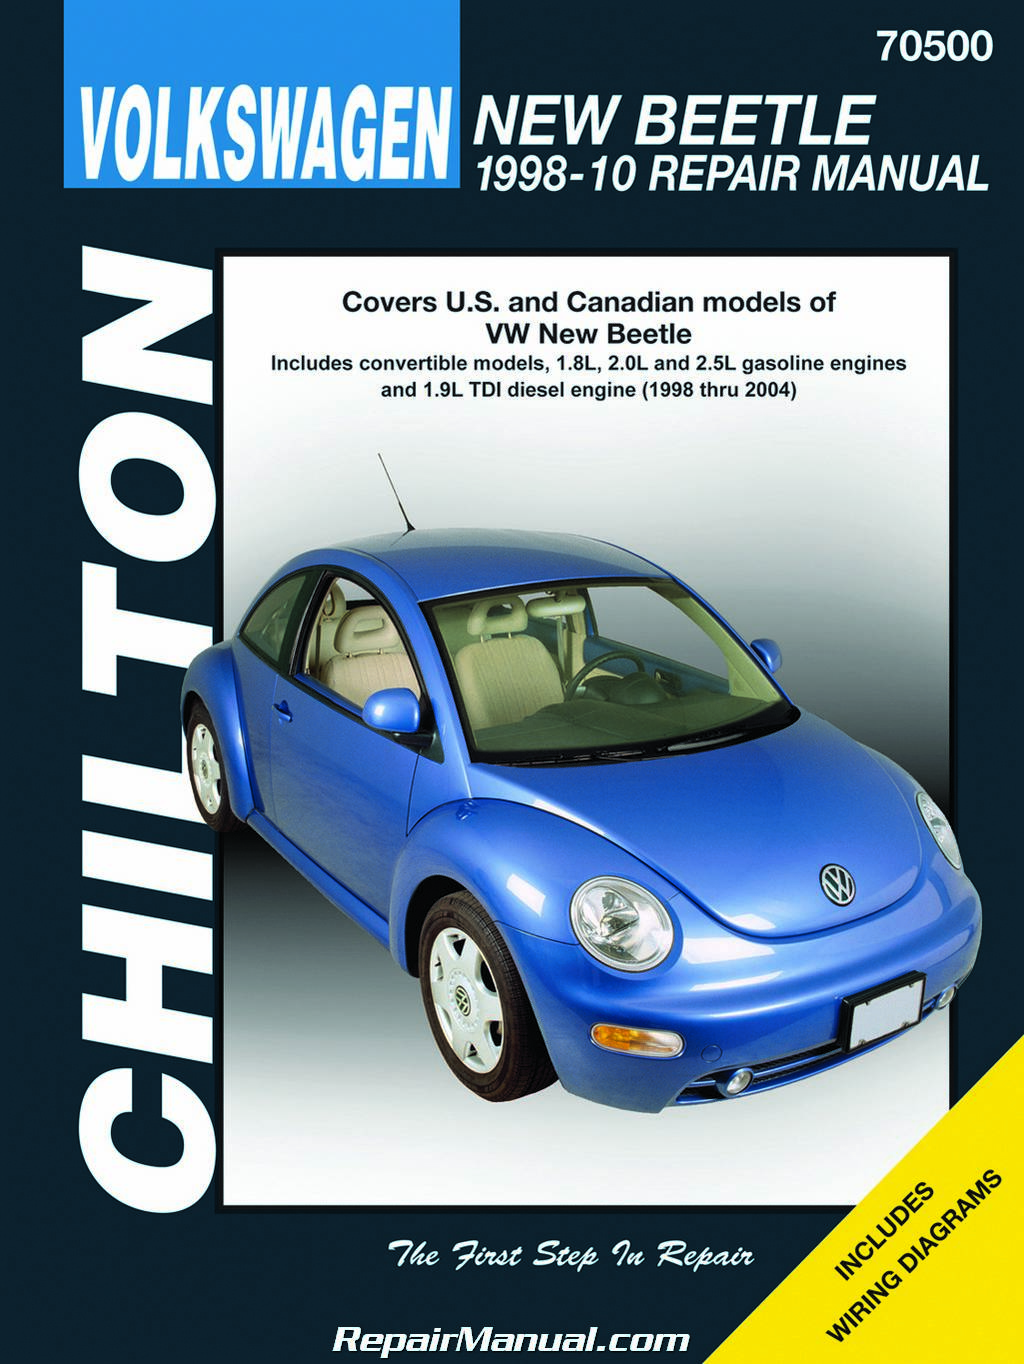 ... Volkswagen New Beetle 1998-2010 Repair Manual. Sale! CH70500